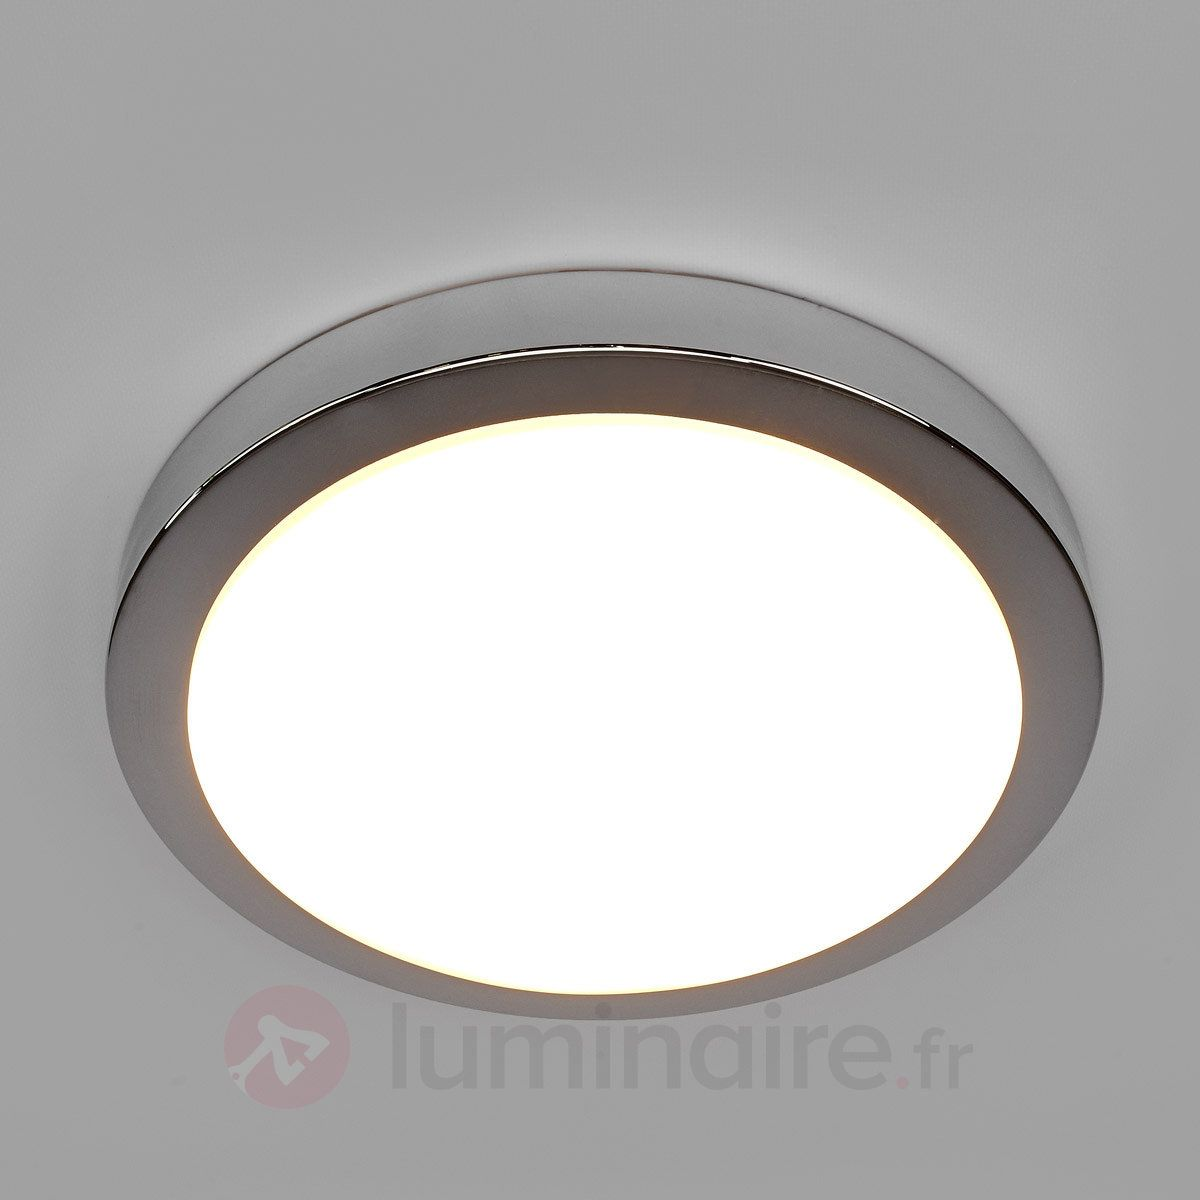 Plafonnier LED Aras chromé brillant IP44